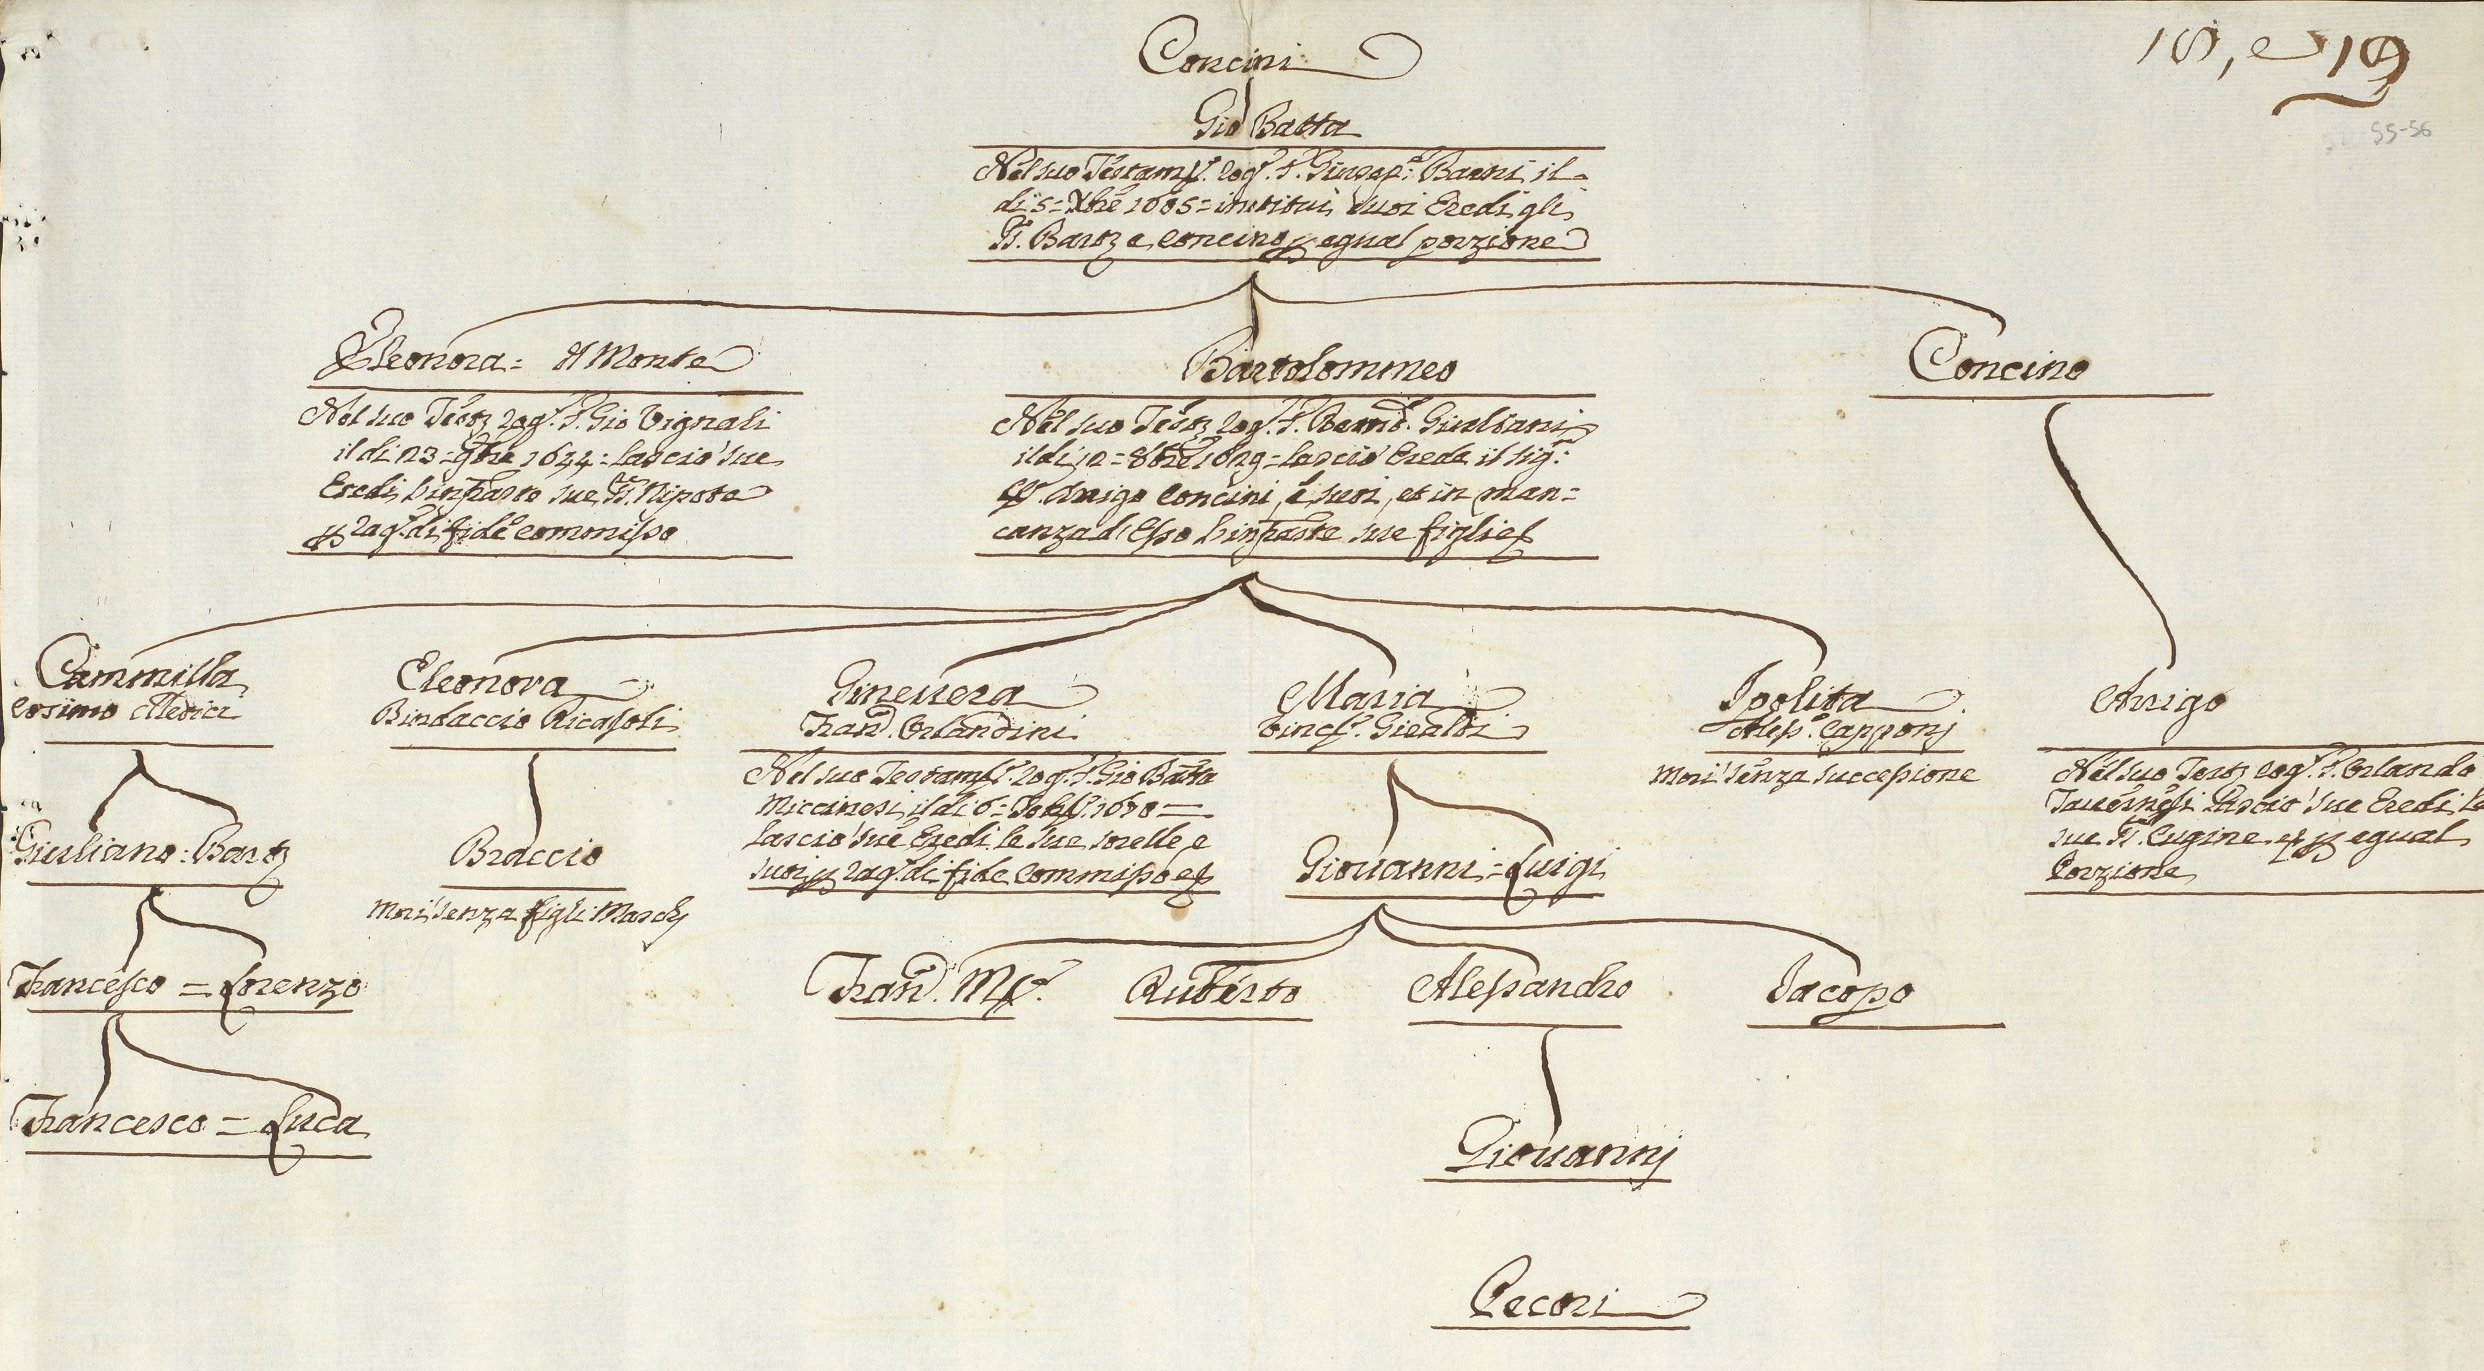 Concini Family Papers-Concini genealogy